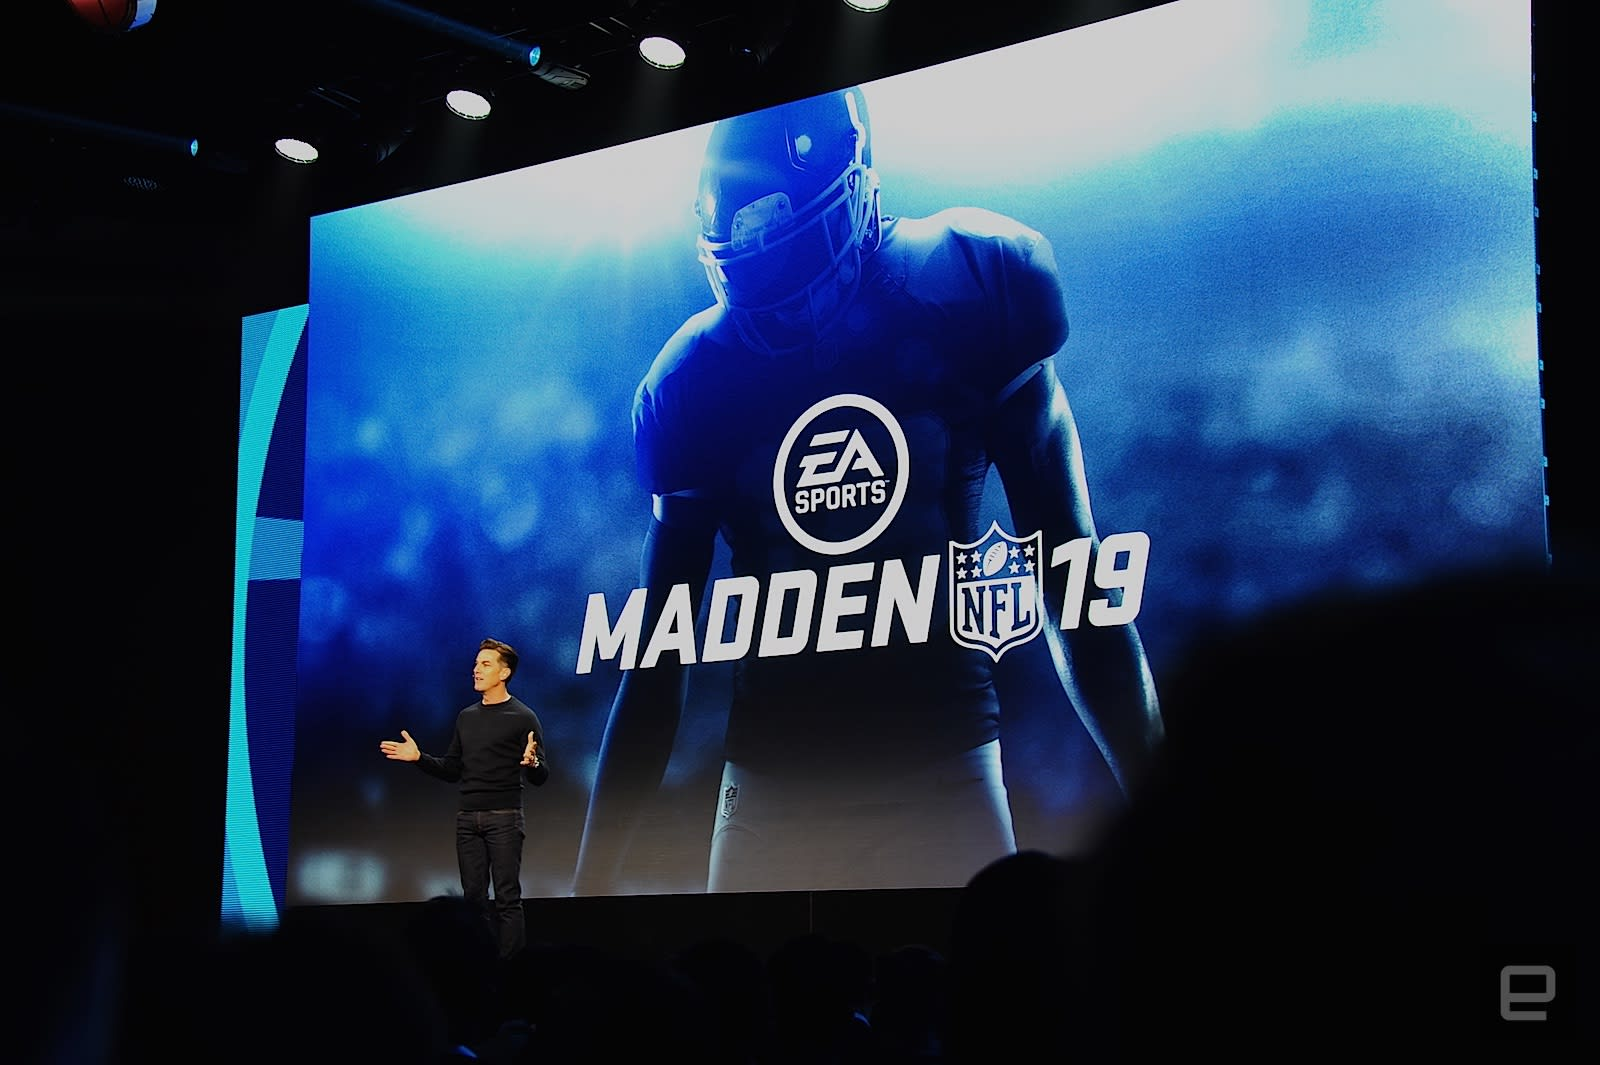 Madden' returns to PC this fall